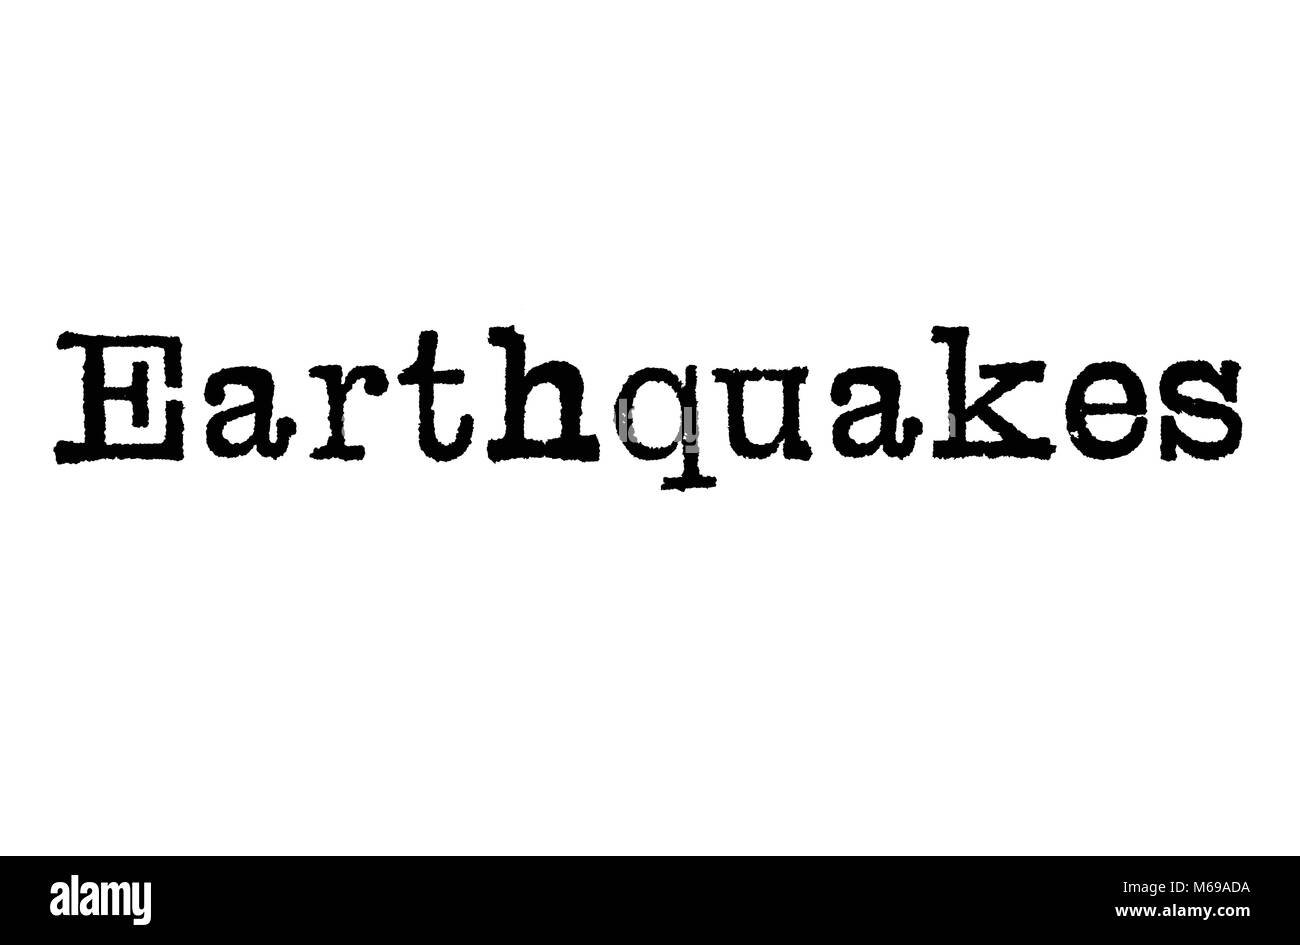 The word Earthquakes from a typewriter on a white background - Stock Image